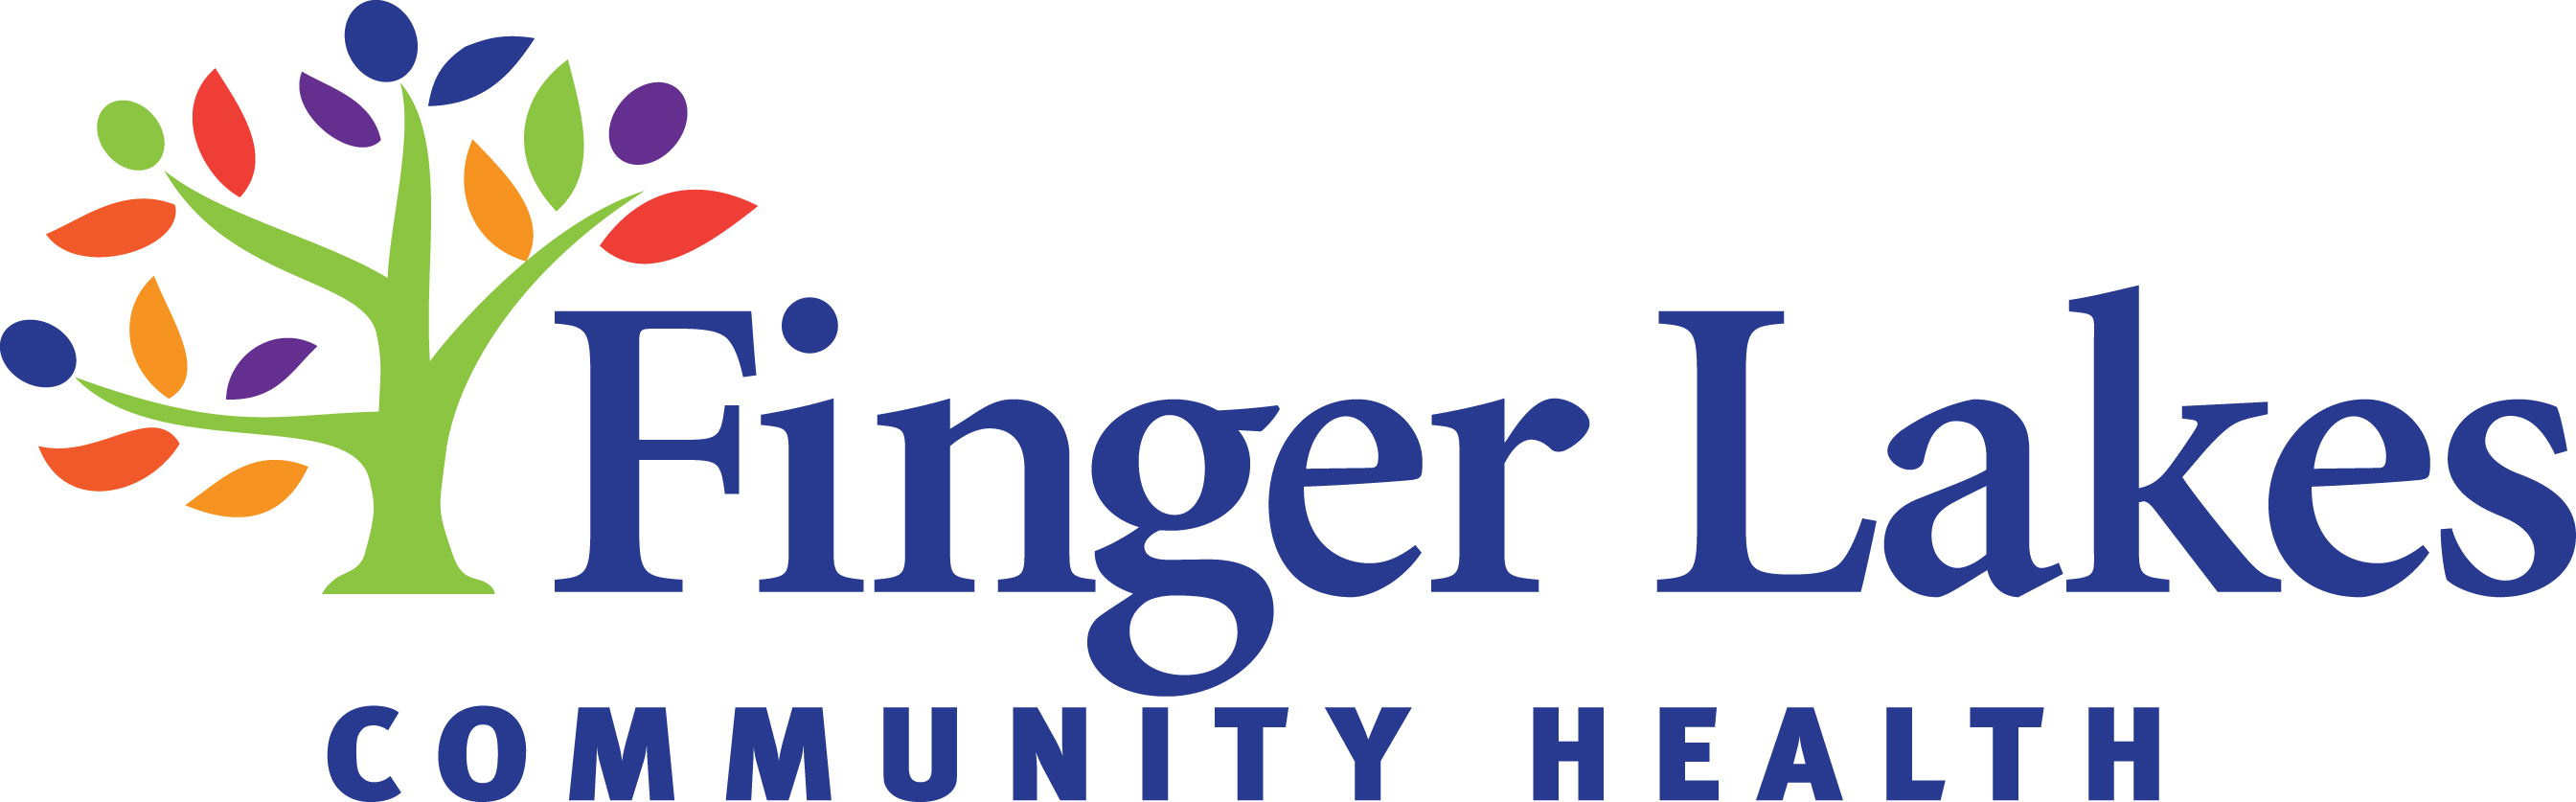 Finger Lakes Community Health gets national award